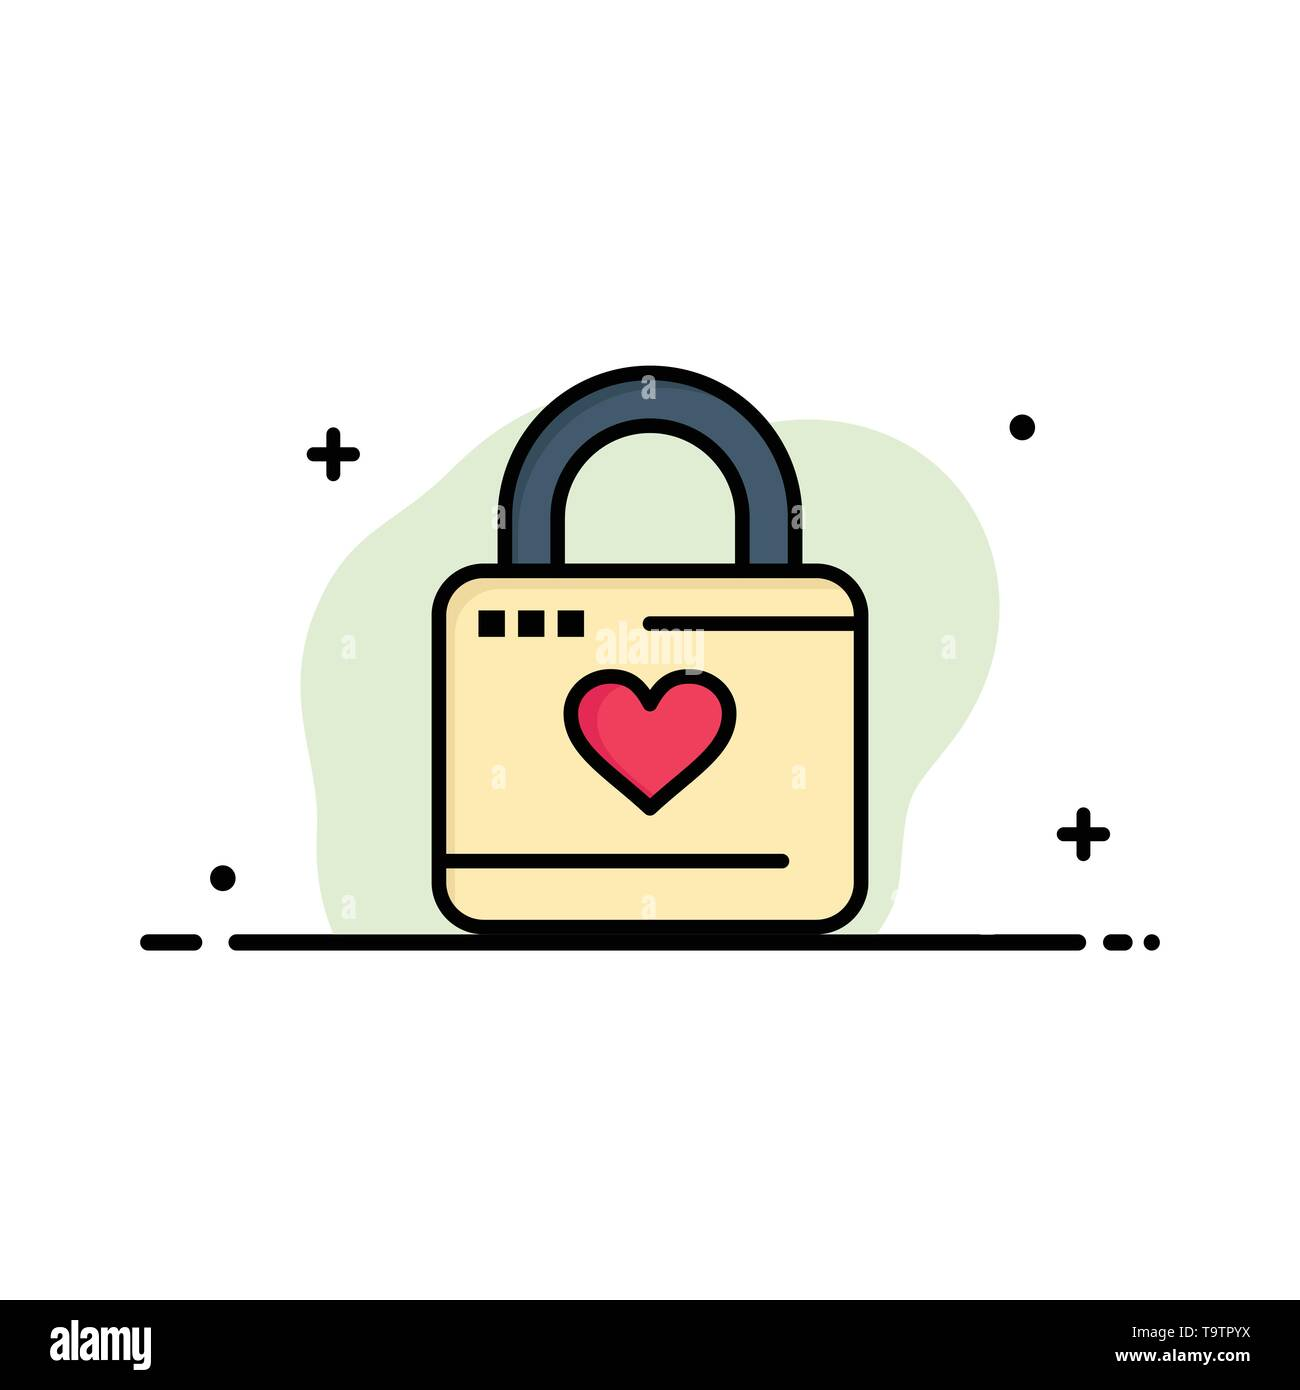 Lock, Locker, Heart, Heart Hacker, Heart Lock Business Logo Template. Flat Color - Stock Image